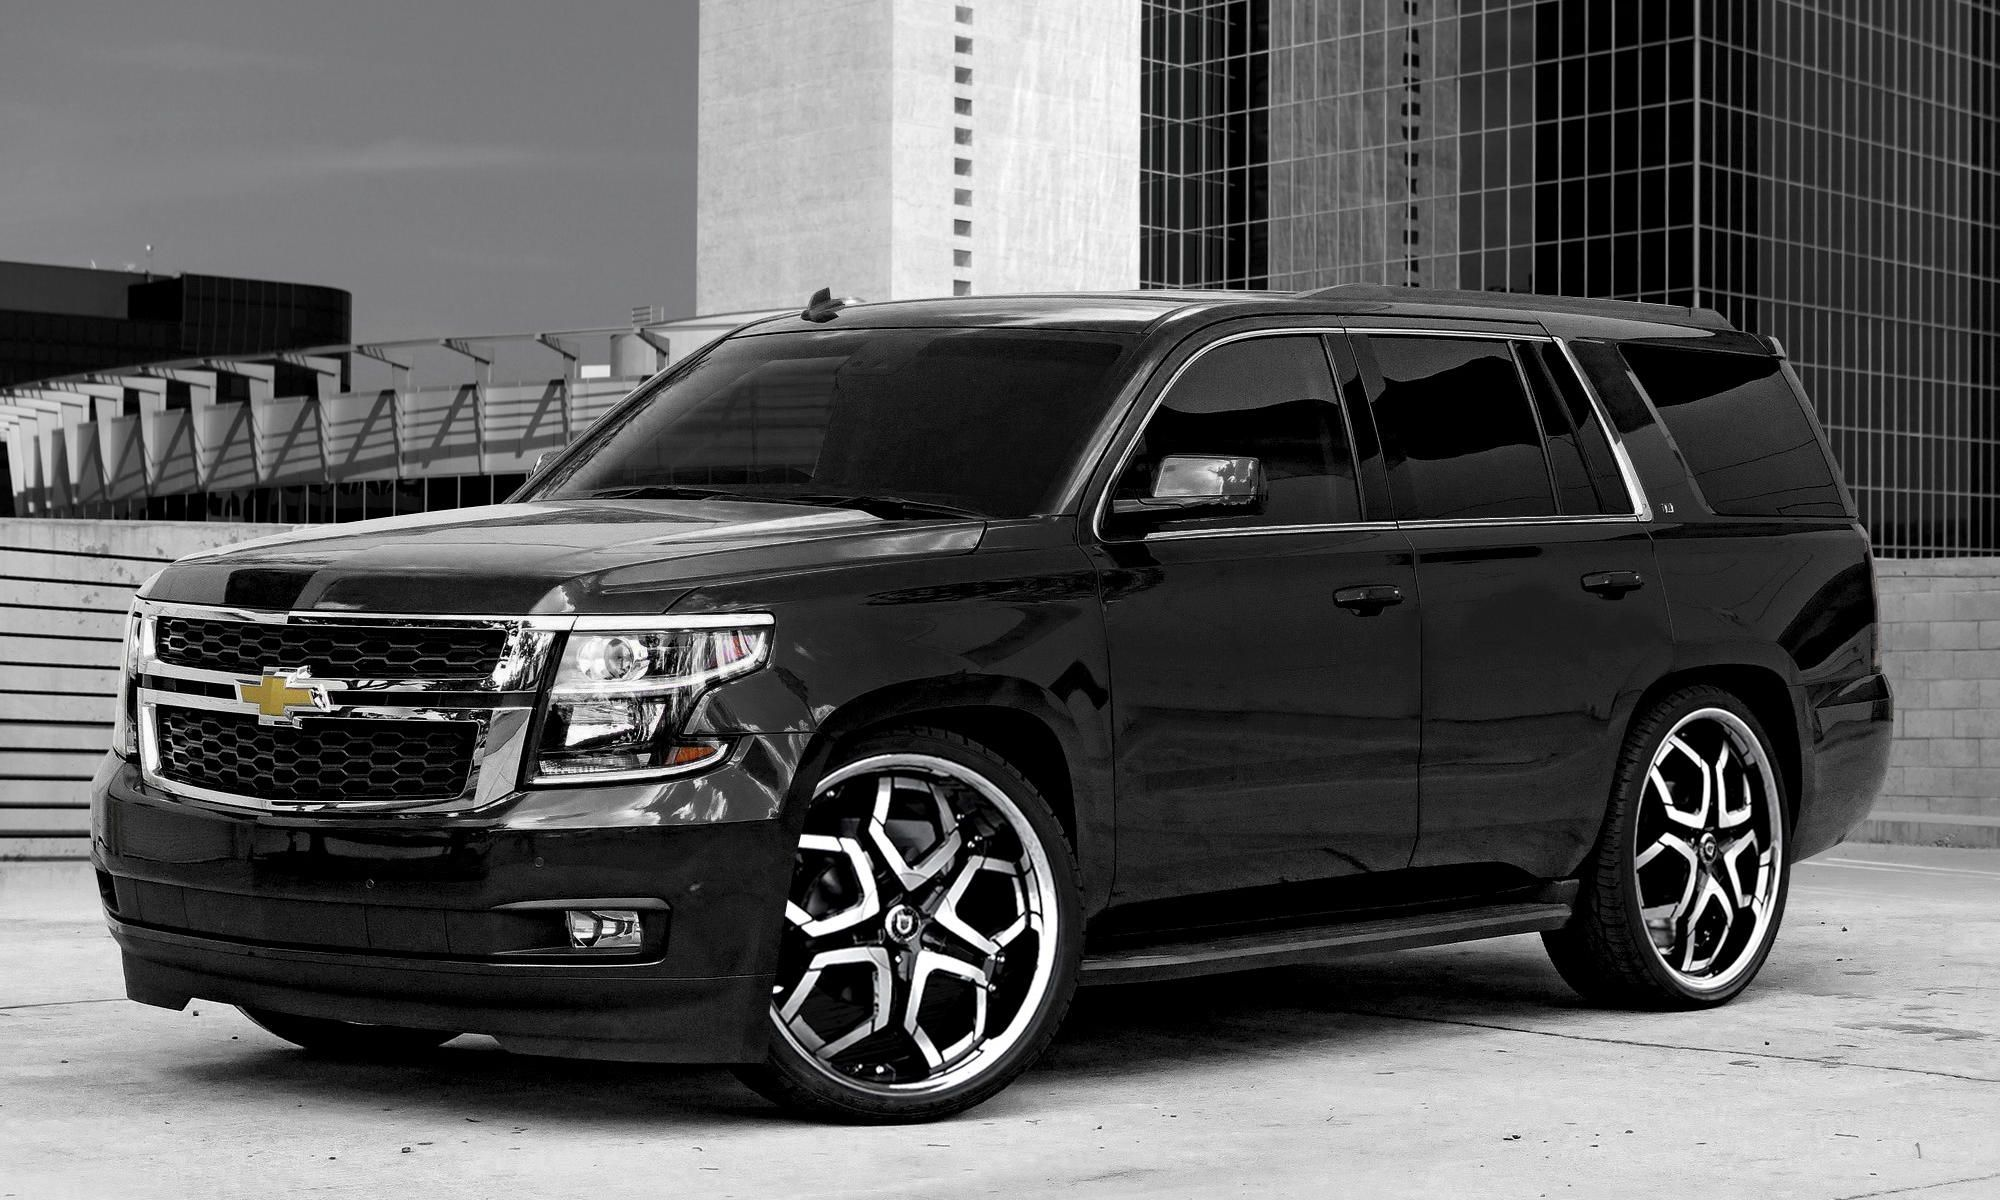 Brand New 2019 Peters Elite Black Widow Chevrolet Tahoe Z71 With Chrome Delete All Trim Either Black Or Red Level Kit In 2020 Chevy Tahoe Tahoe Chevrolet Tahoe